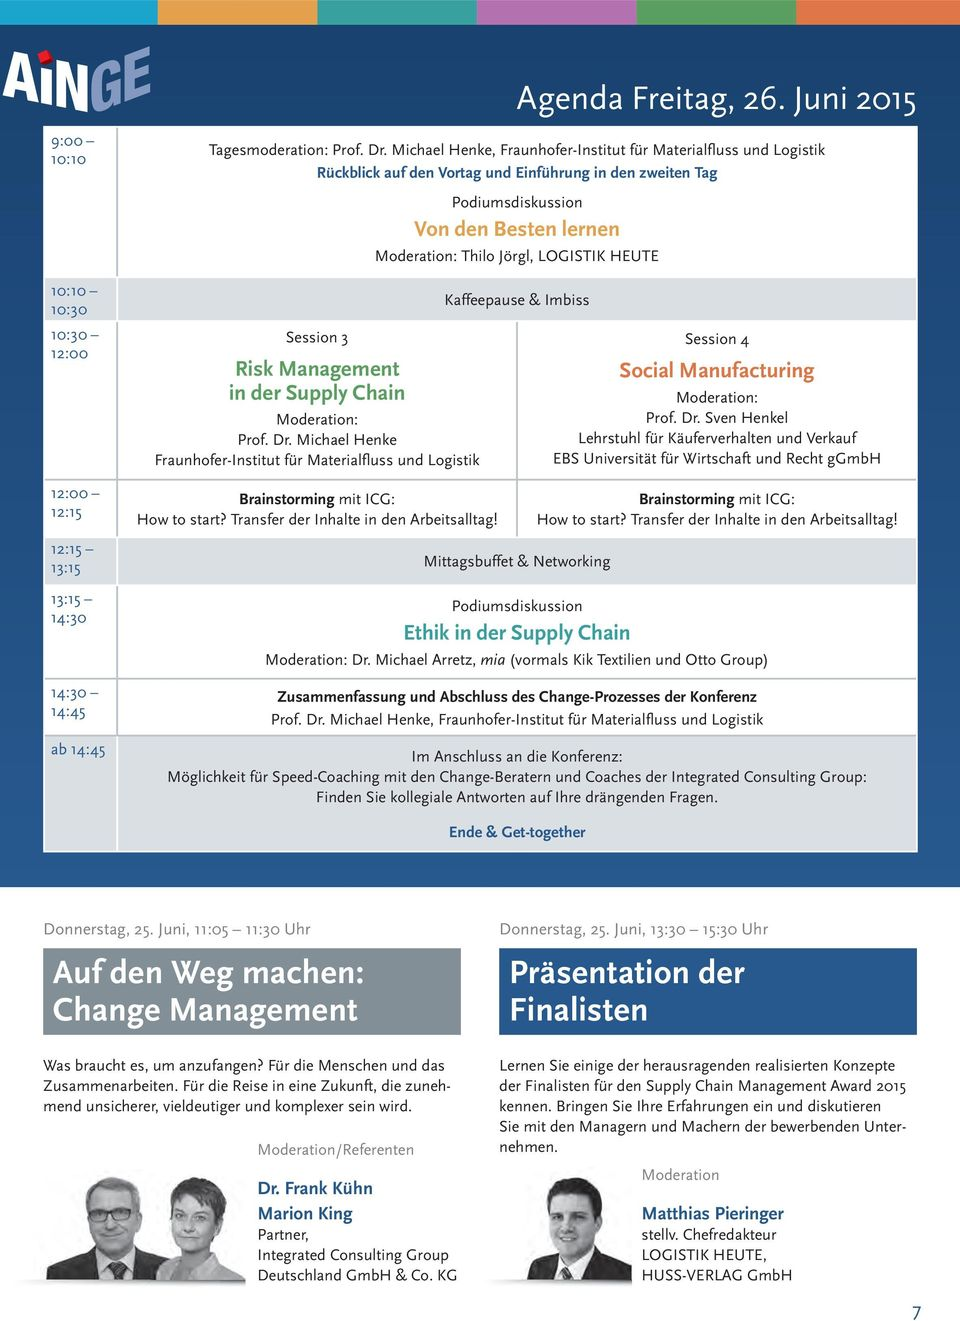 HEUTE 10:10 10:30 10:30 12:00 Session 3 Risk Management in der Supply Chain Moderation: Prof. Dr.